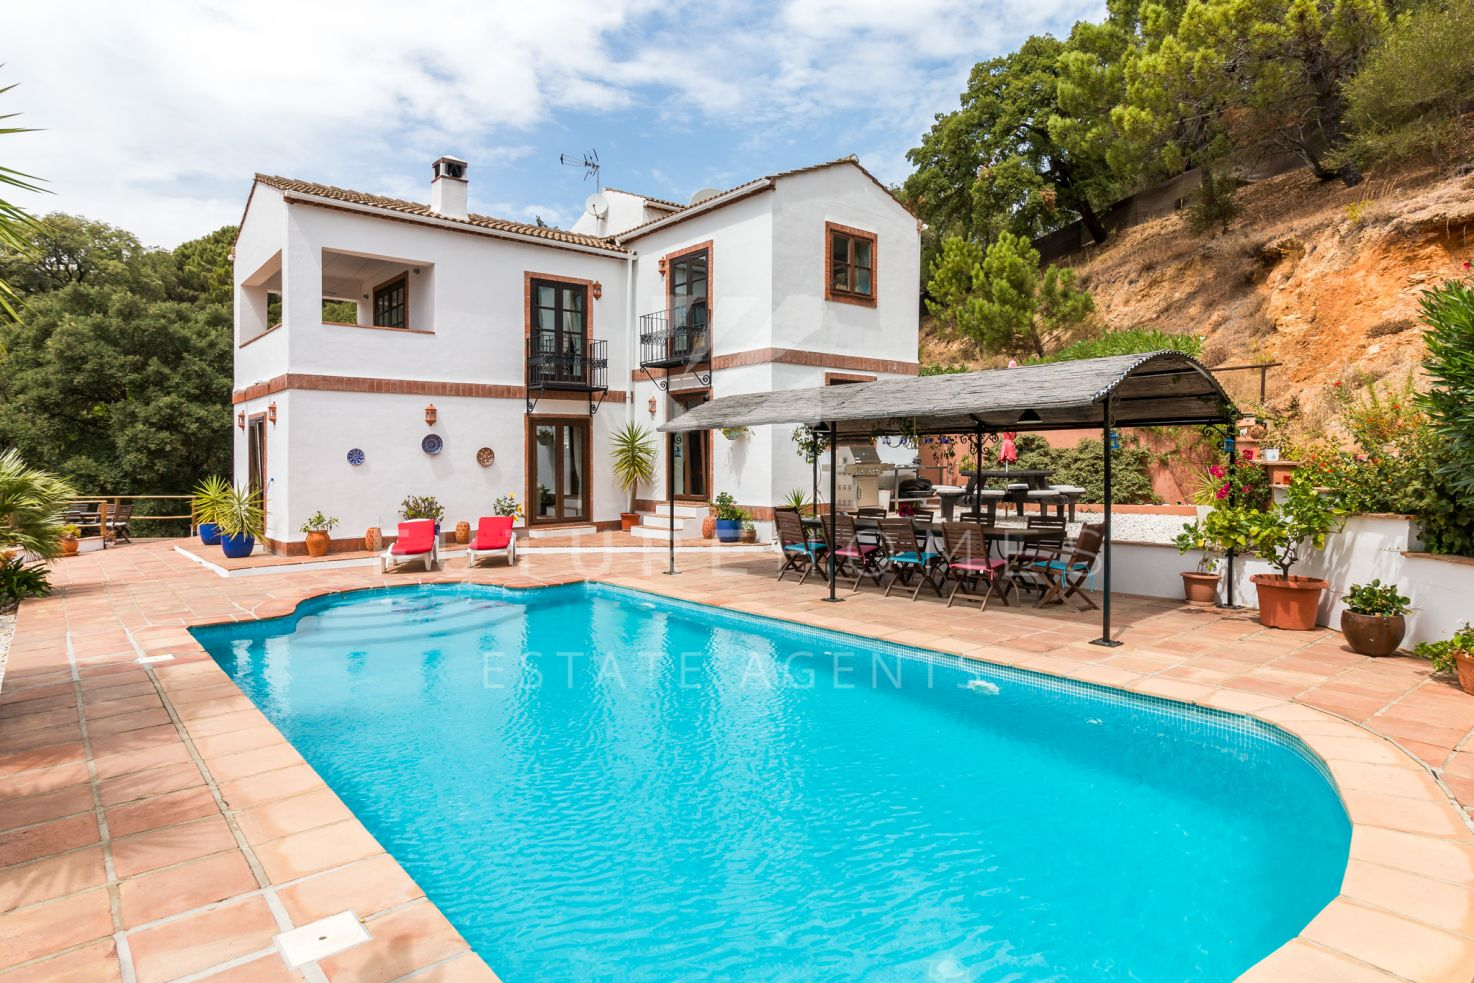 Immaculate private villa with guest house and stunning views in Casares.